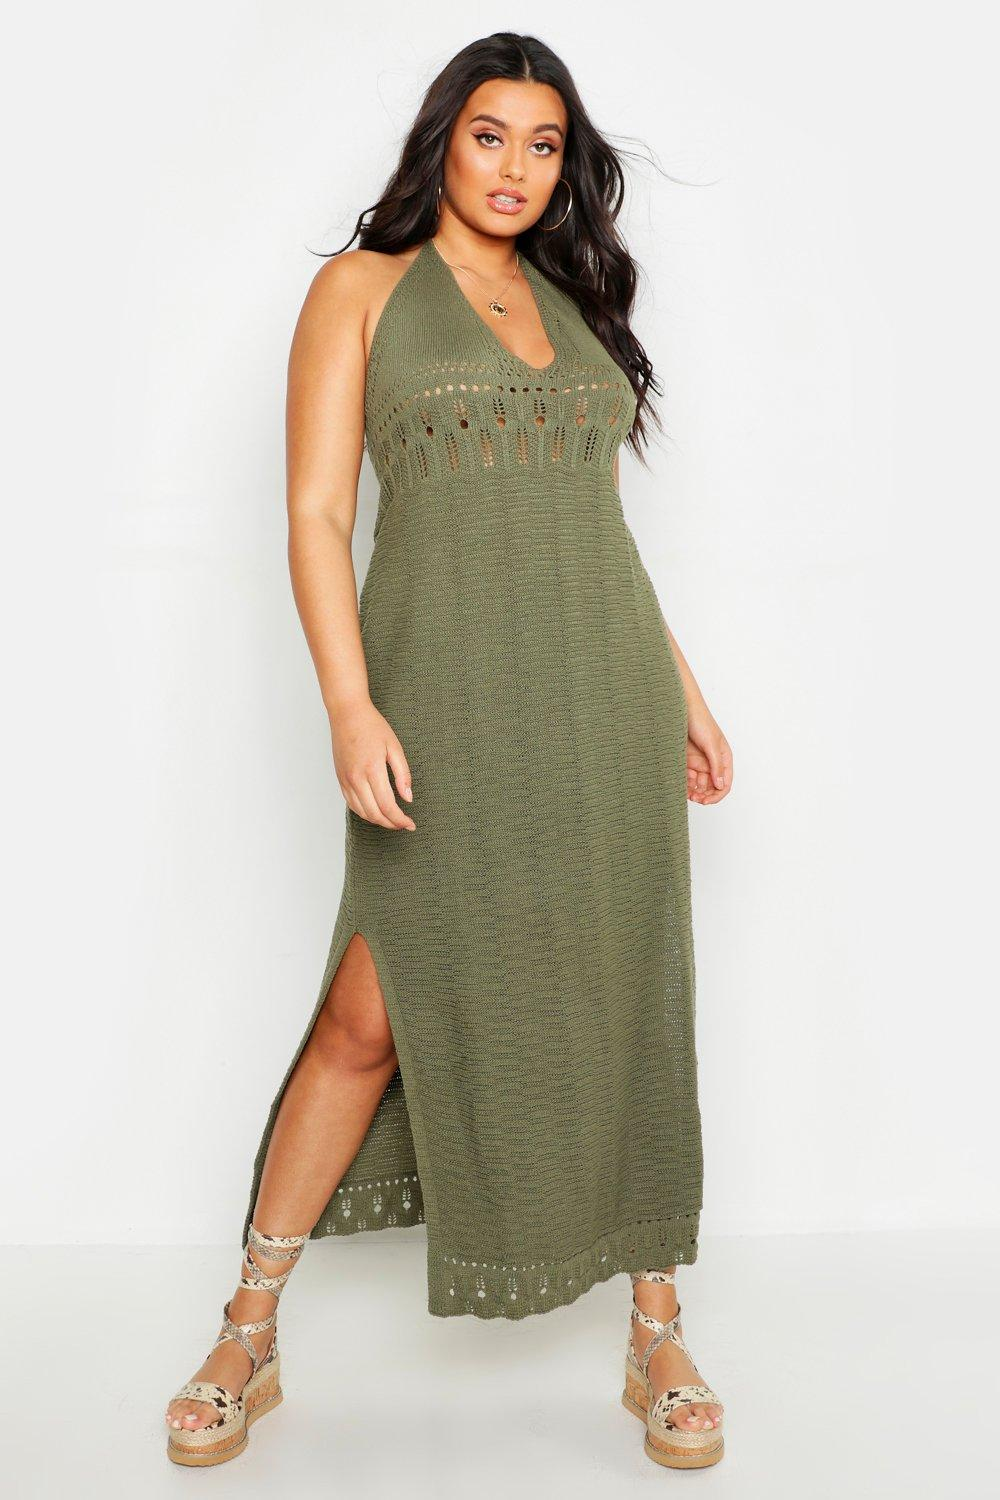 boohoo Womens Plus Crochet Halter Neck Maxi Dress - Green - 22, Green